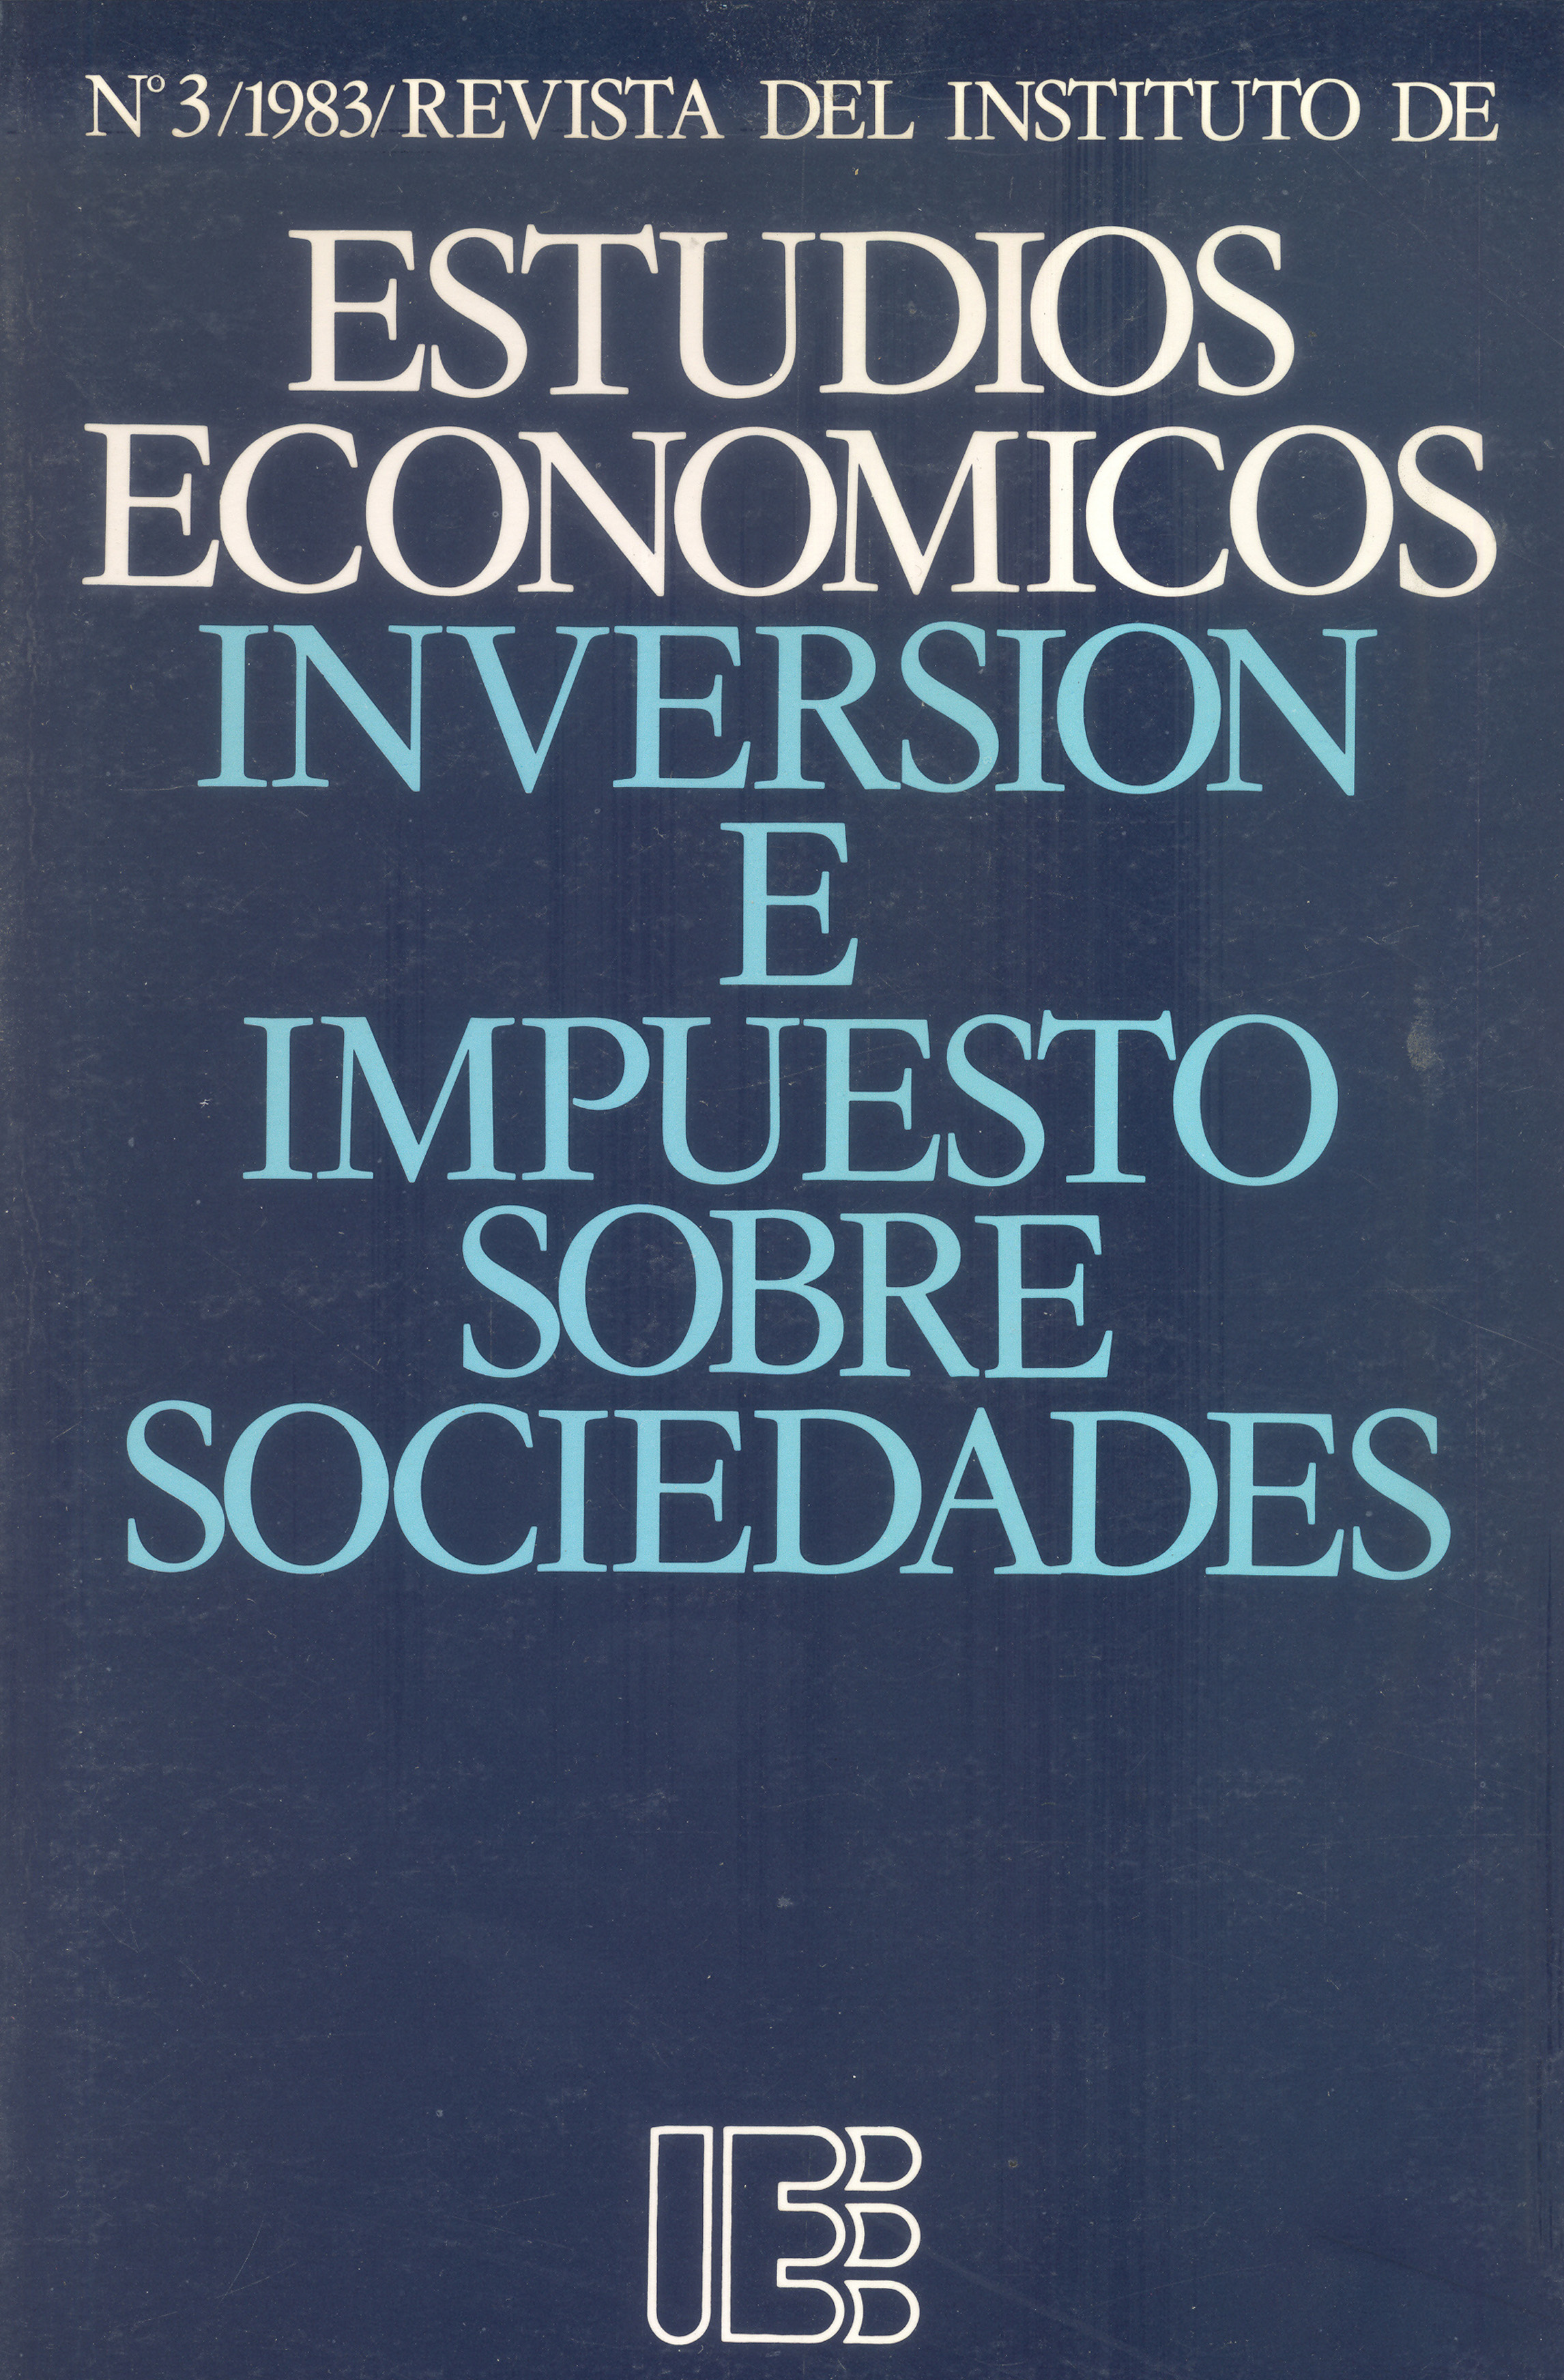 3_inversion-impuesto-sociedades1983